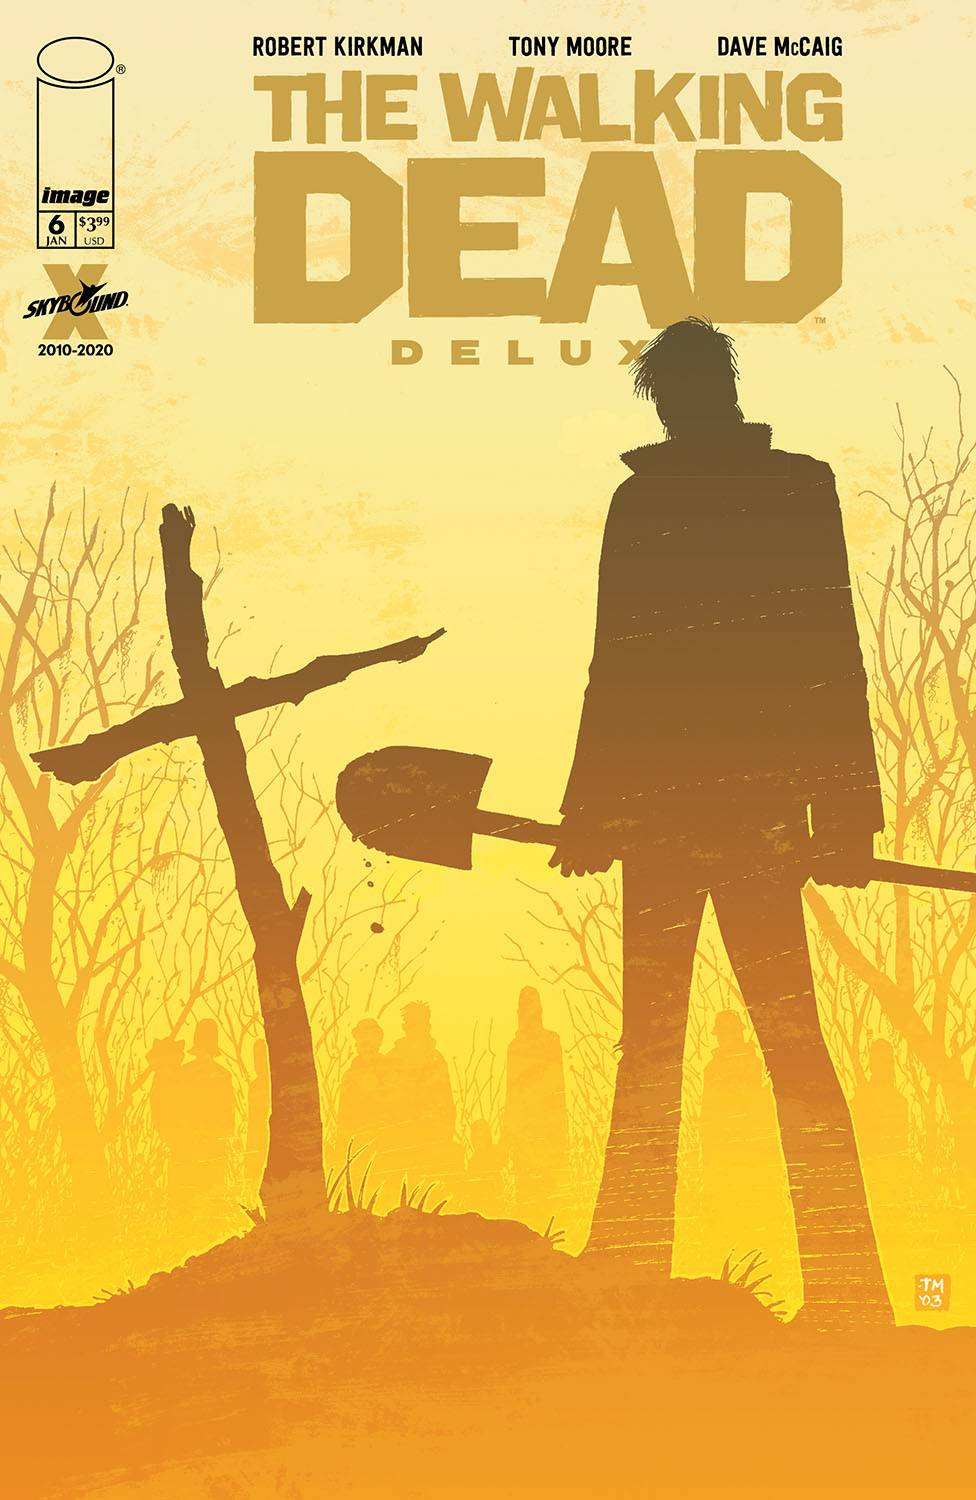 WALKING DEAD DLX #6 CVR B MOORE & MCCAIG (MR)